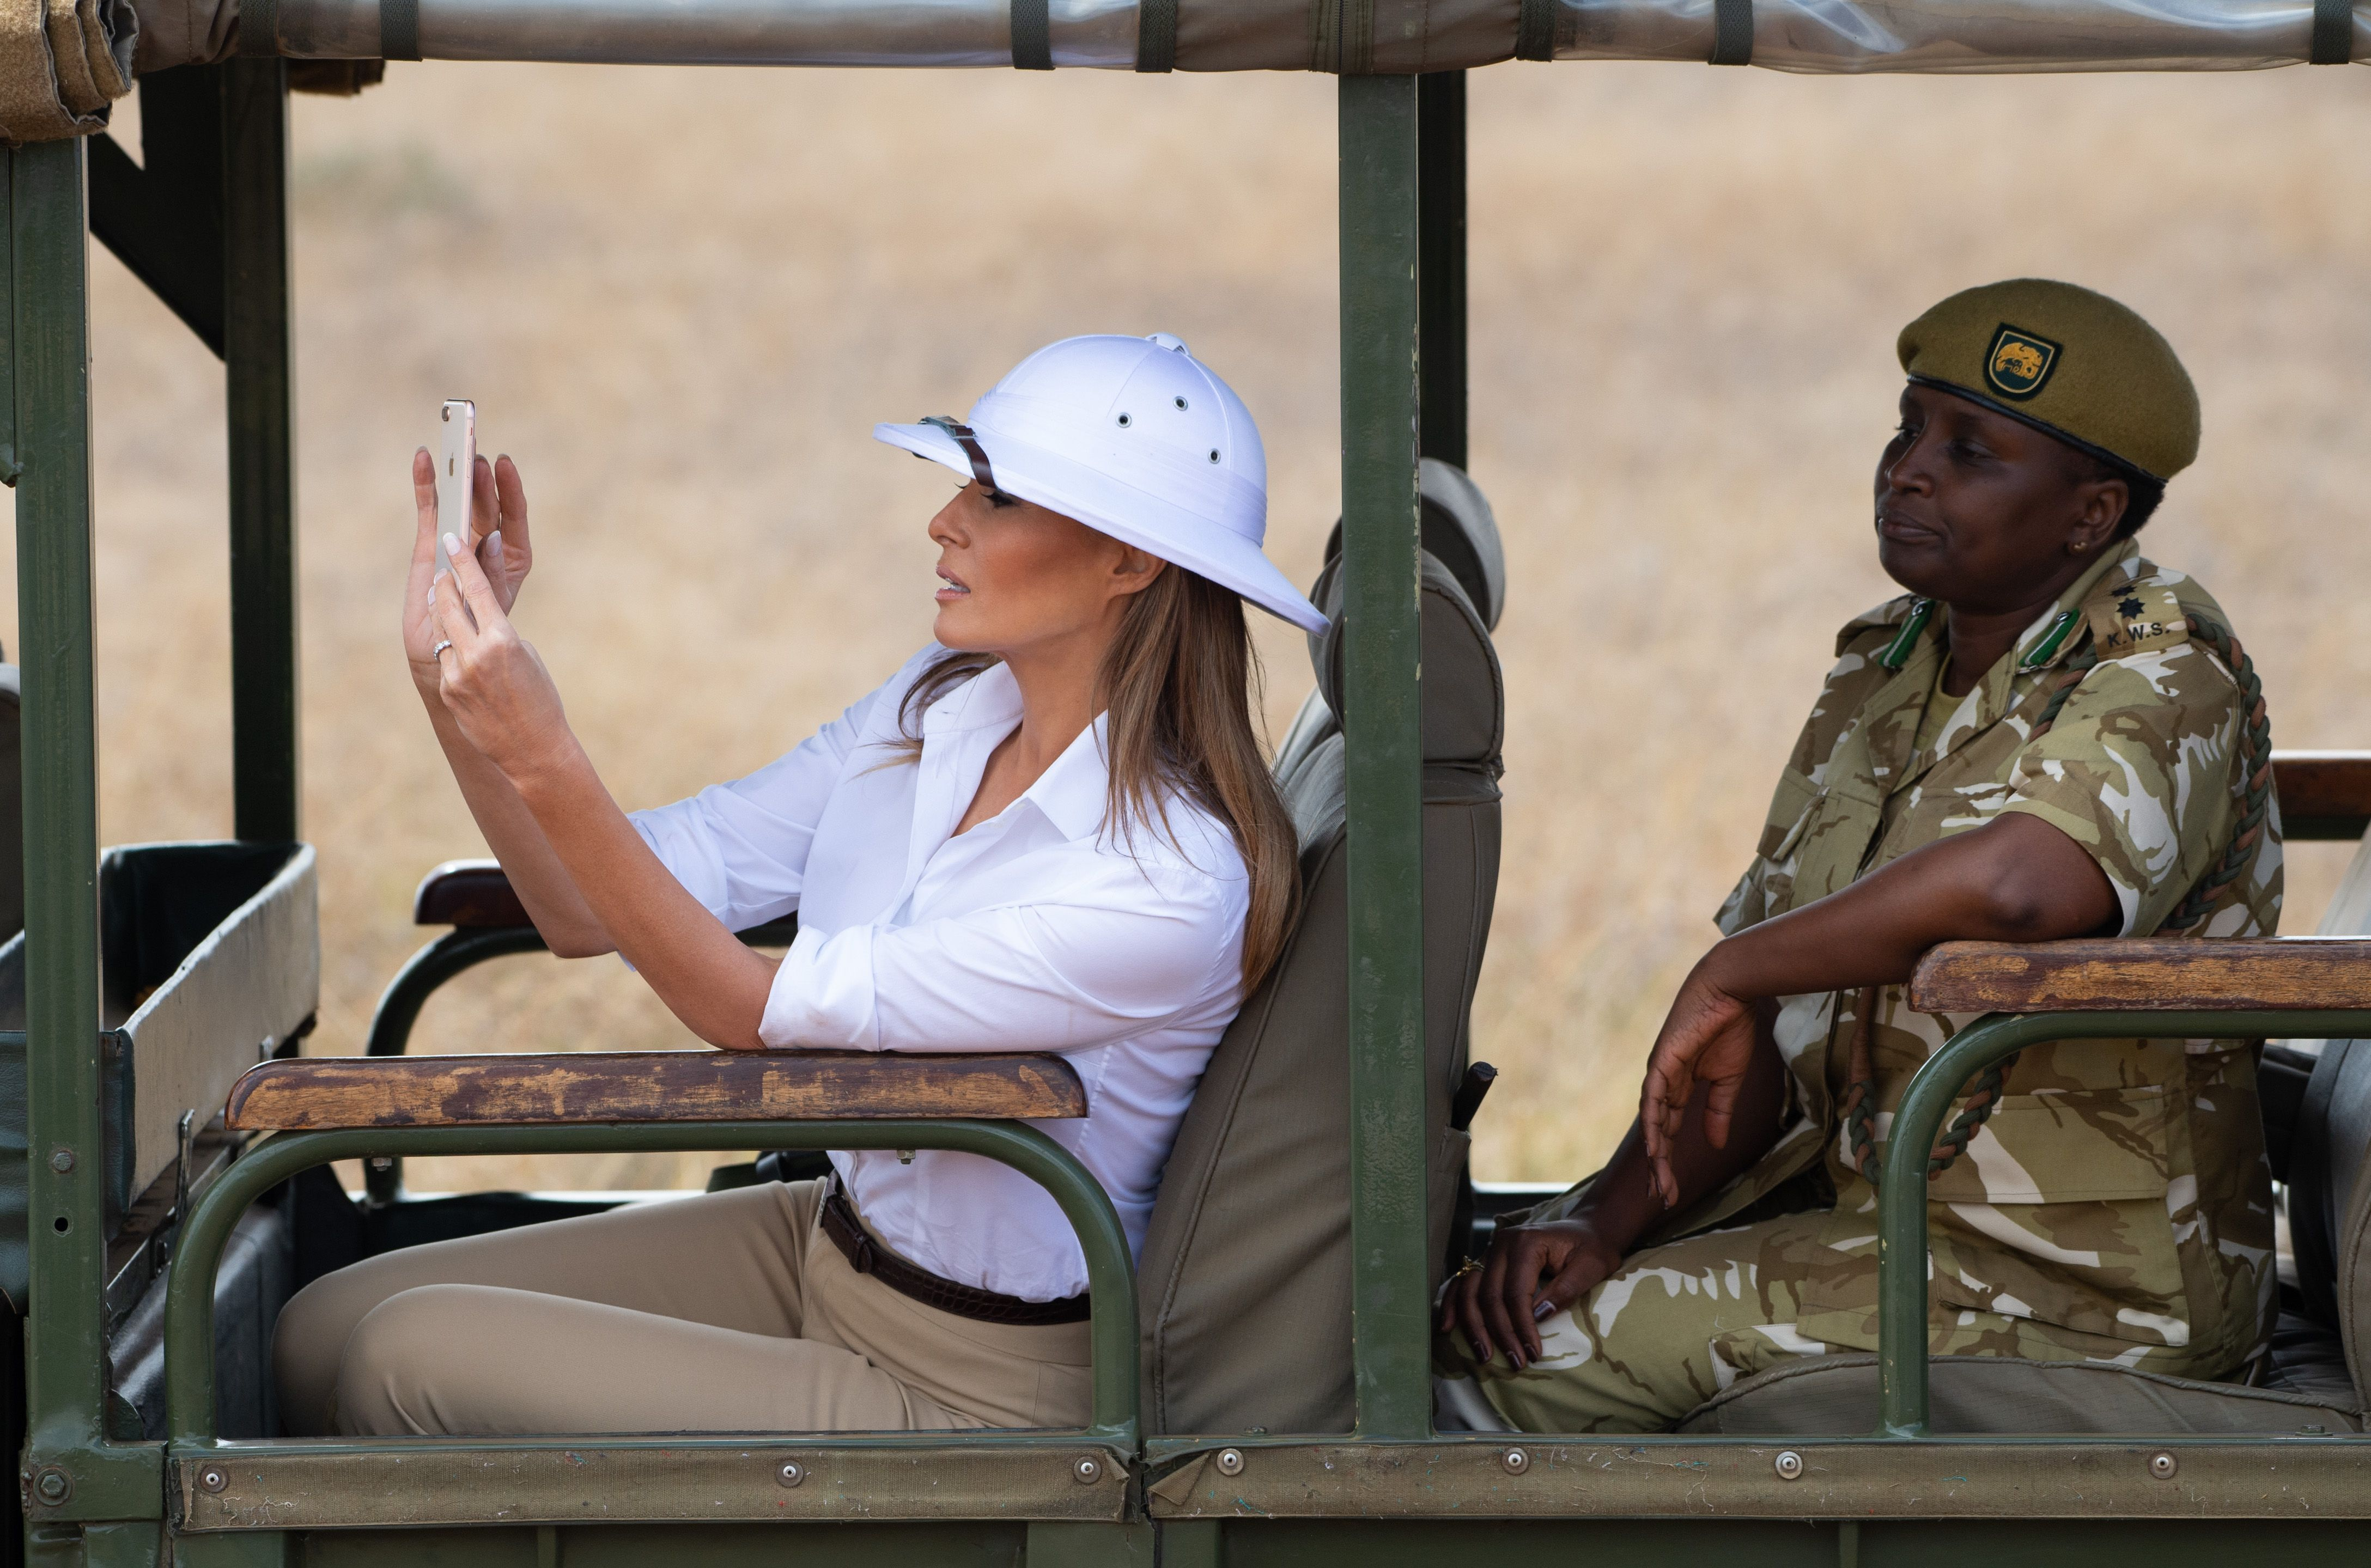 Flipboard: Melania Trump criticised for wearing controversial colonial-era hat during her trip ...